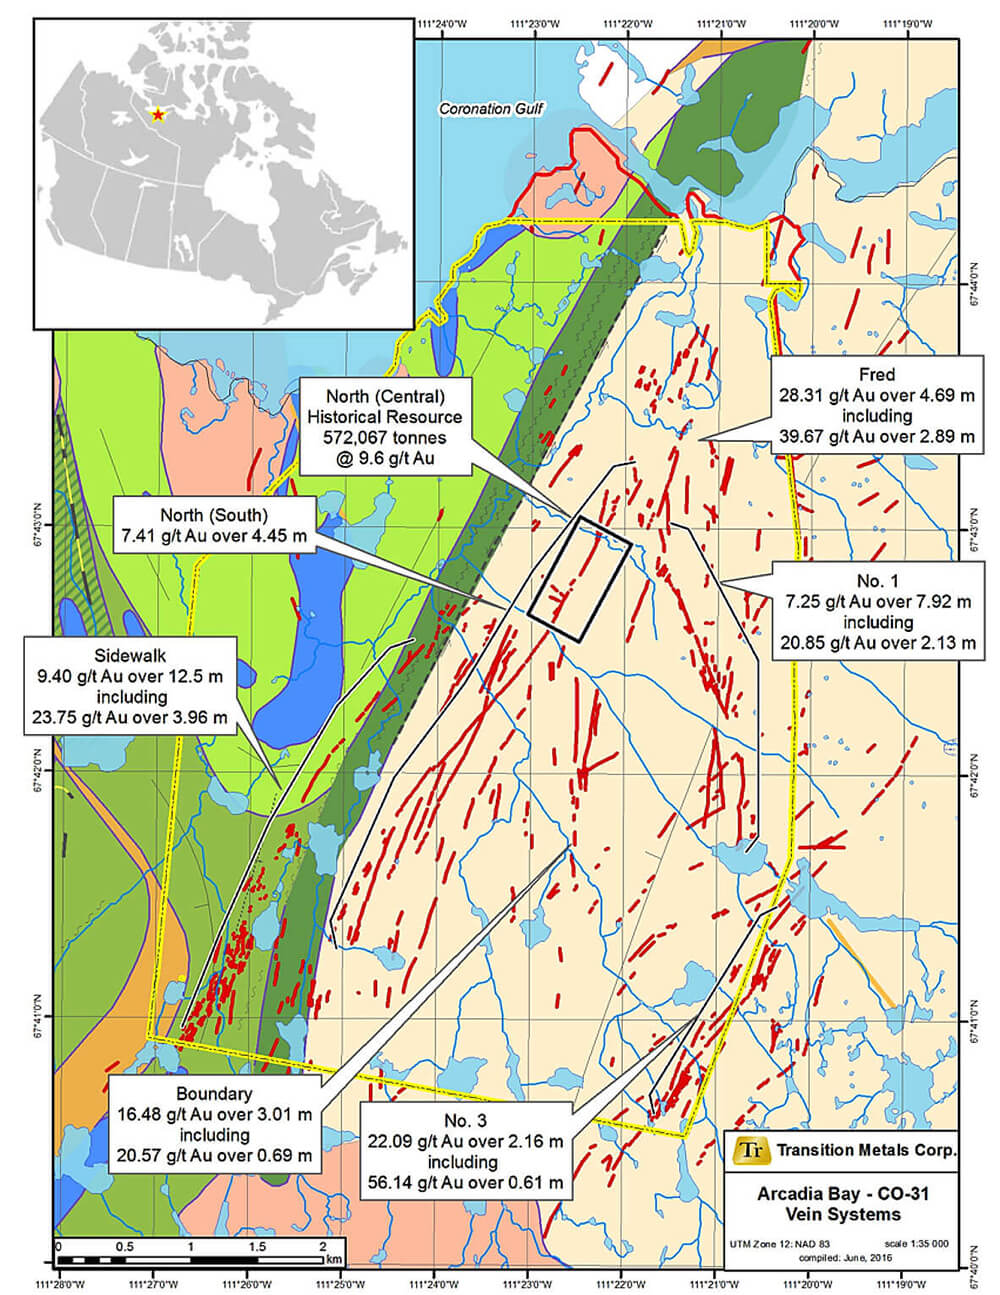 Figure 1: Geology and Vein Systems on the Arcadia Bay Property based on historical data